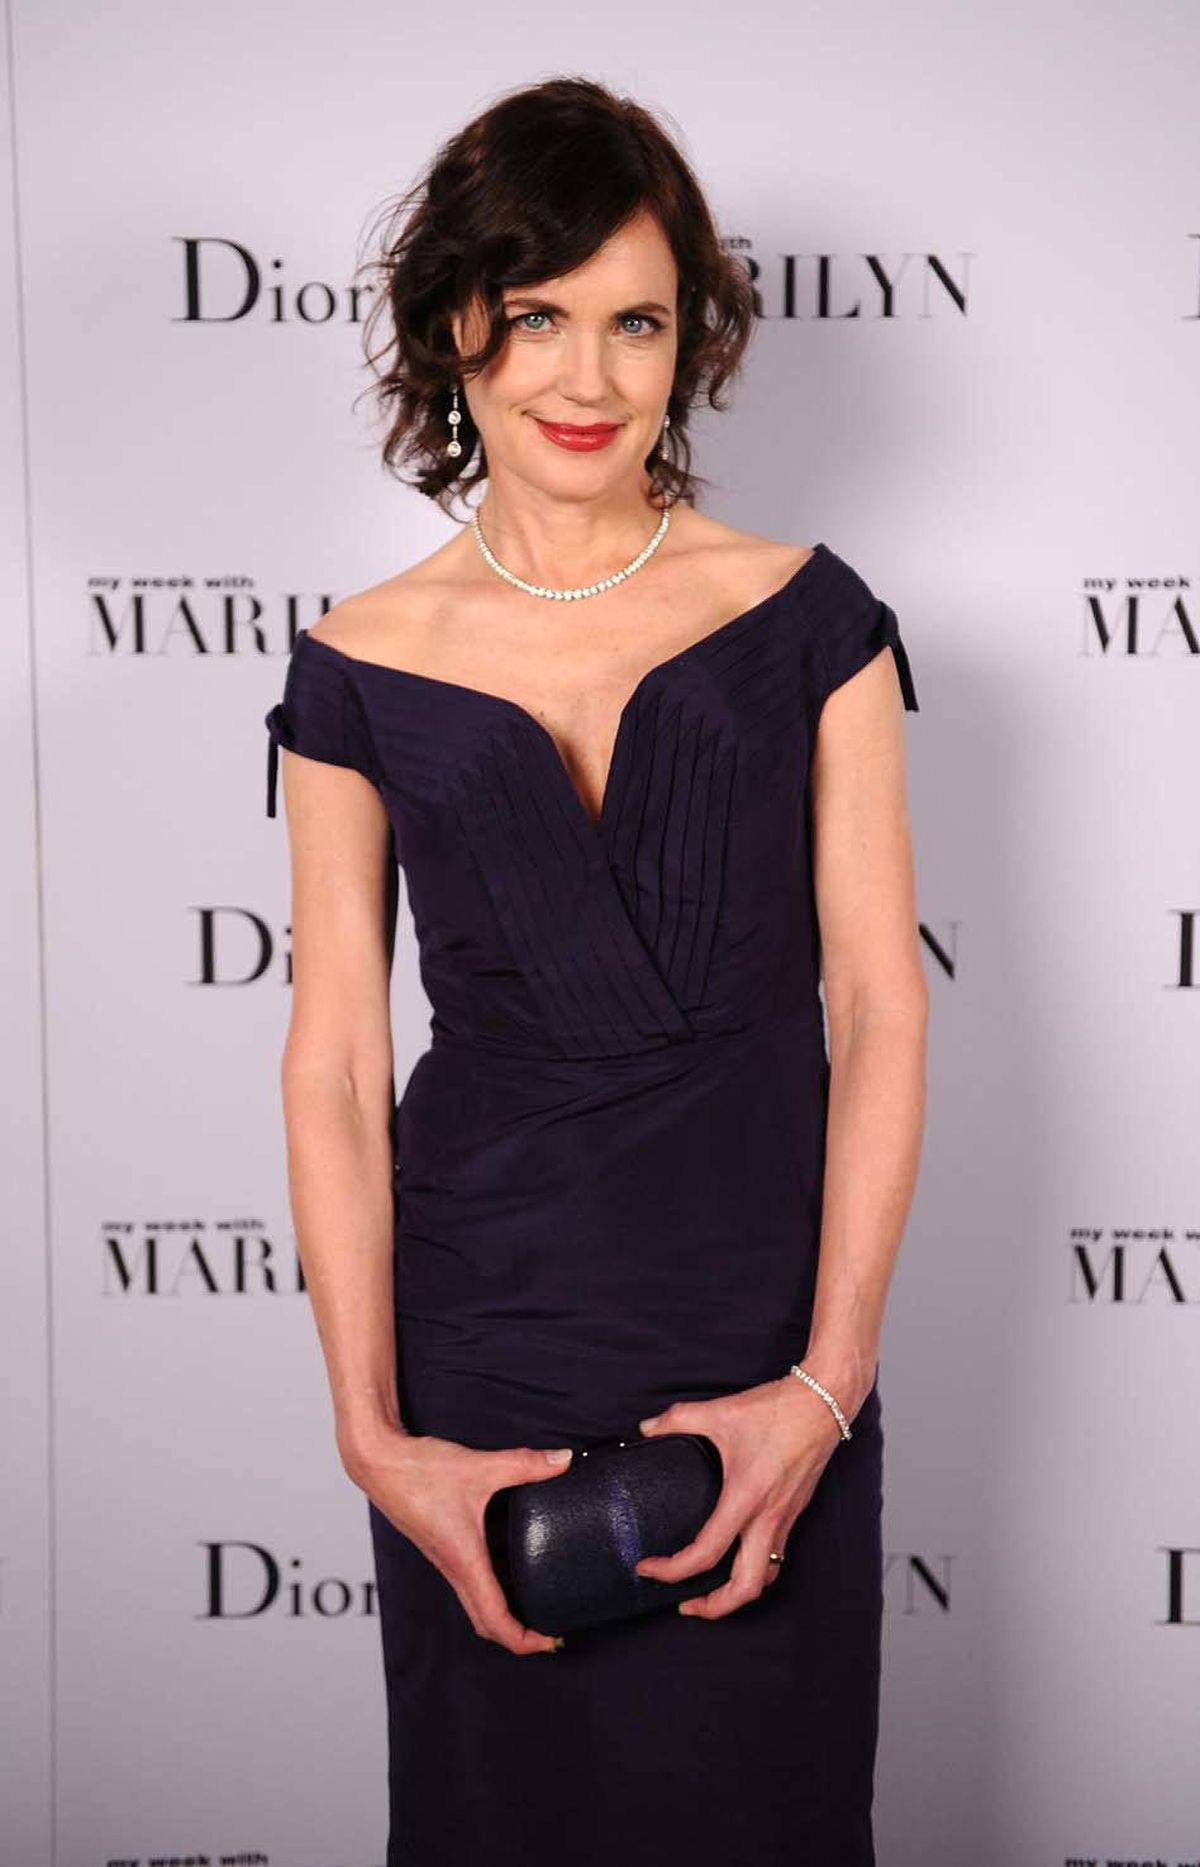 """Week Five of the Occupy Wall Street movement finds couture-and-pearls-bedecked actress Elizabeth McGovern preoccupied with America's growing income disparity at the New York Film Festival premiere of """"My Week With Marilyn"""" at a swank New York City hotel on Sunday."""